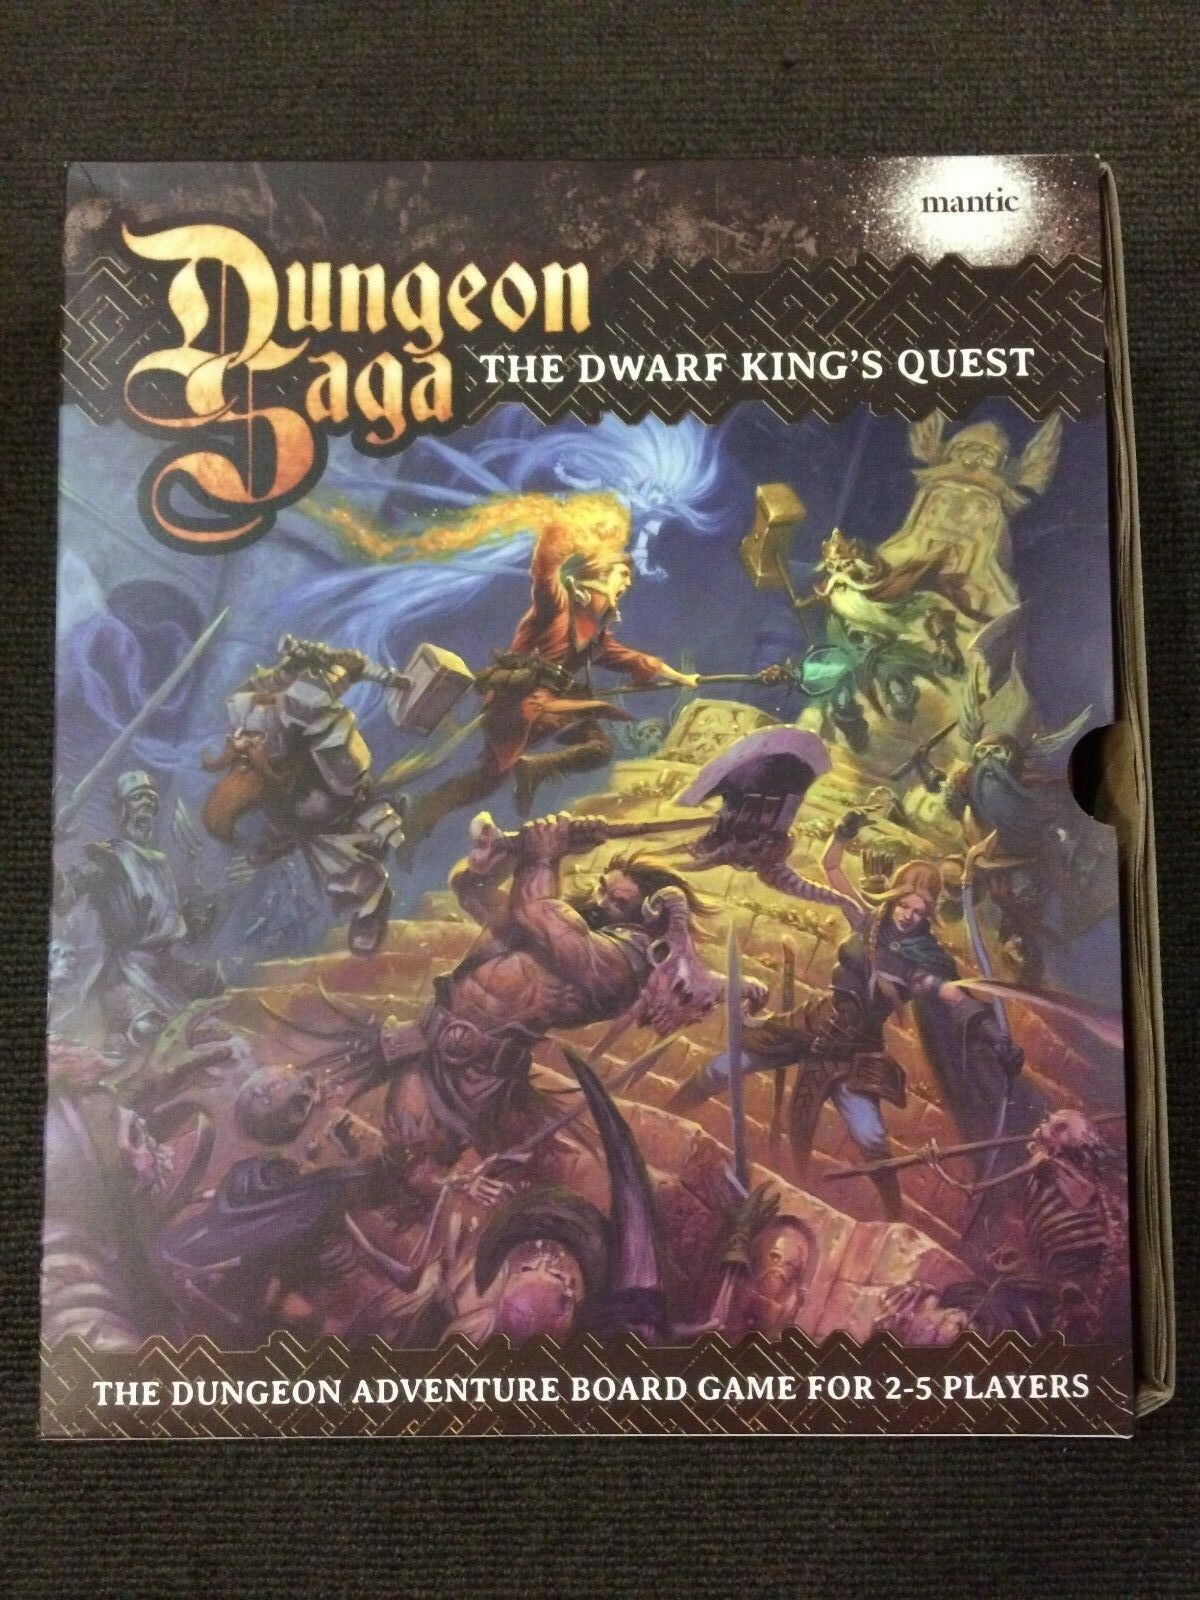 Dungeon Saga The  Dwarf re's Quest tavola gioco - Very Good Condition  vendita online risparmia il 70%